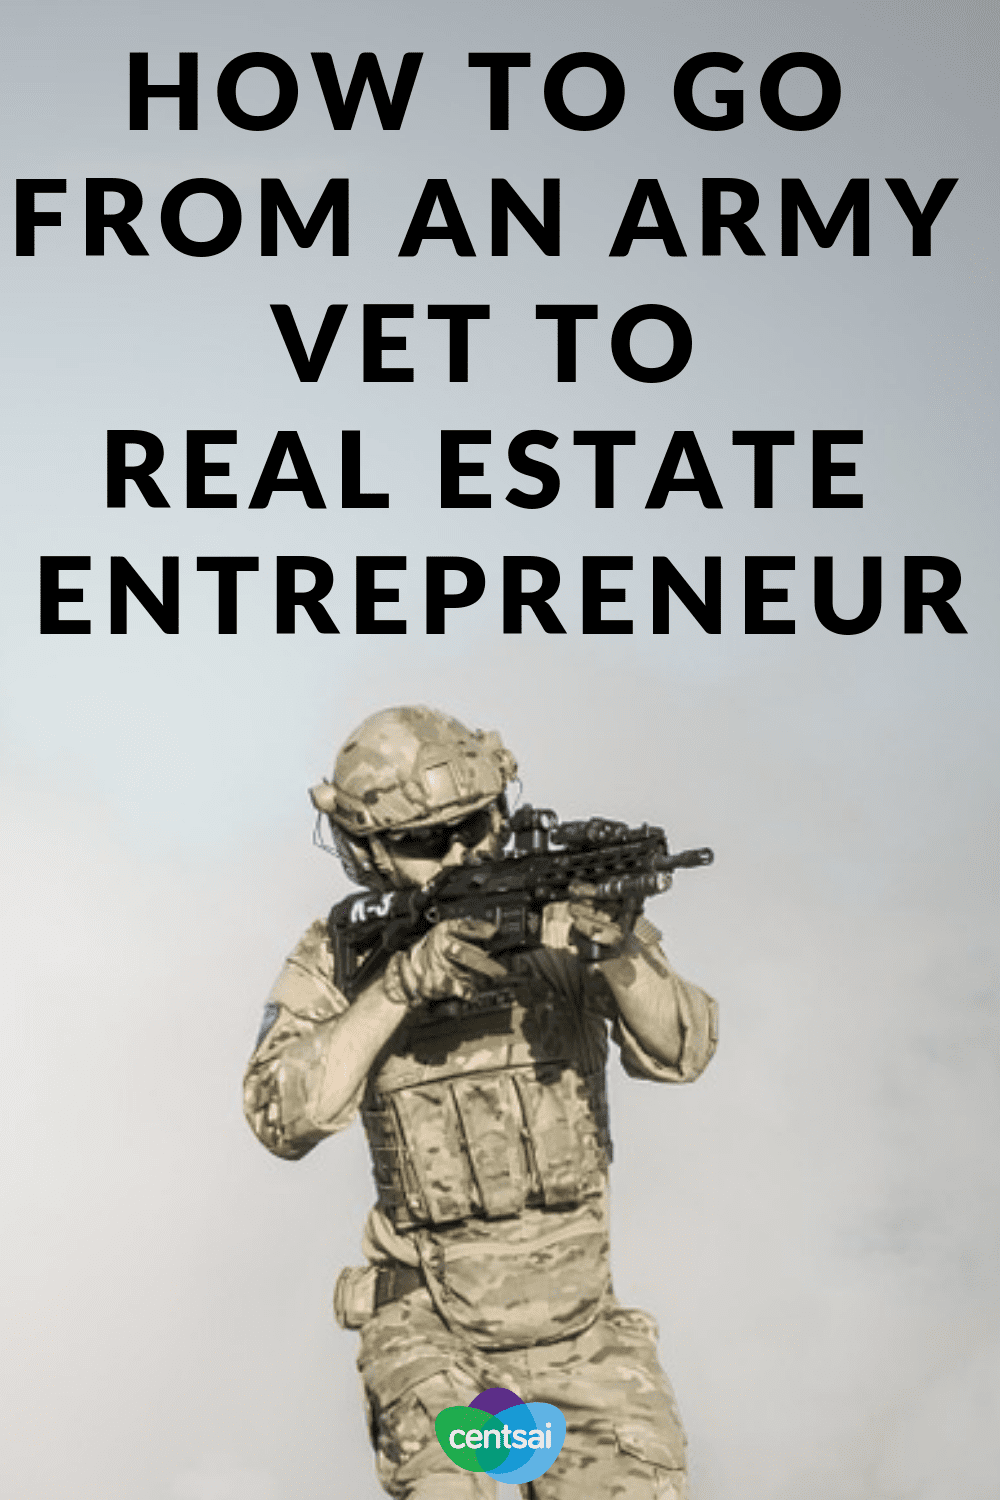 How To Go From An Army Vet to Real Estate Entrepreneur. Learn how one Army veteran grew his business from the ground up and used his success as a real estate entrepreneur to help other vets. #veteran #realestate #entrepreneur